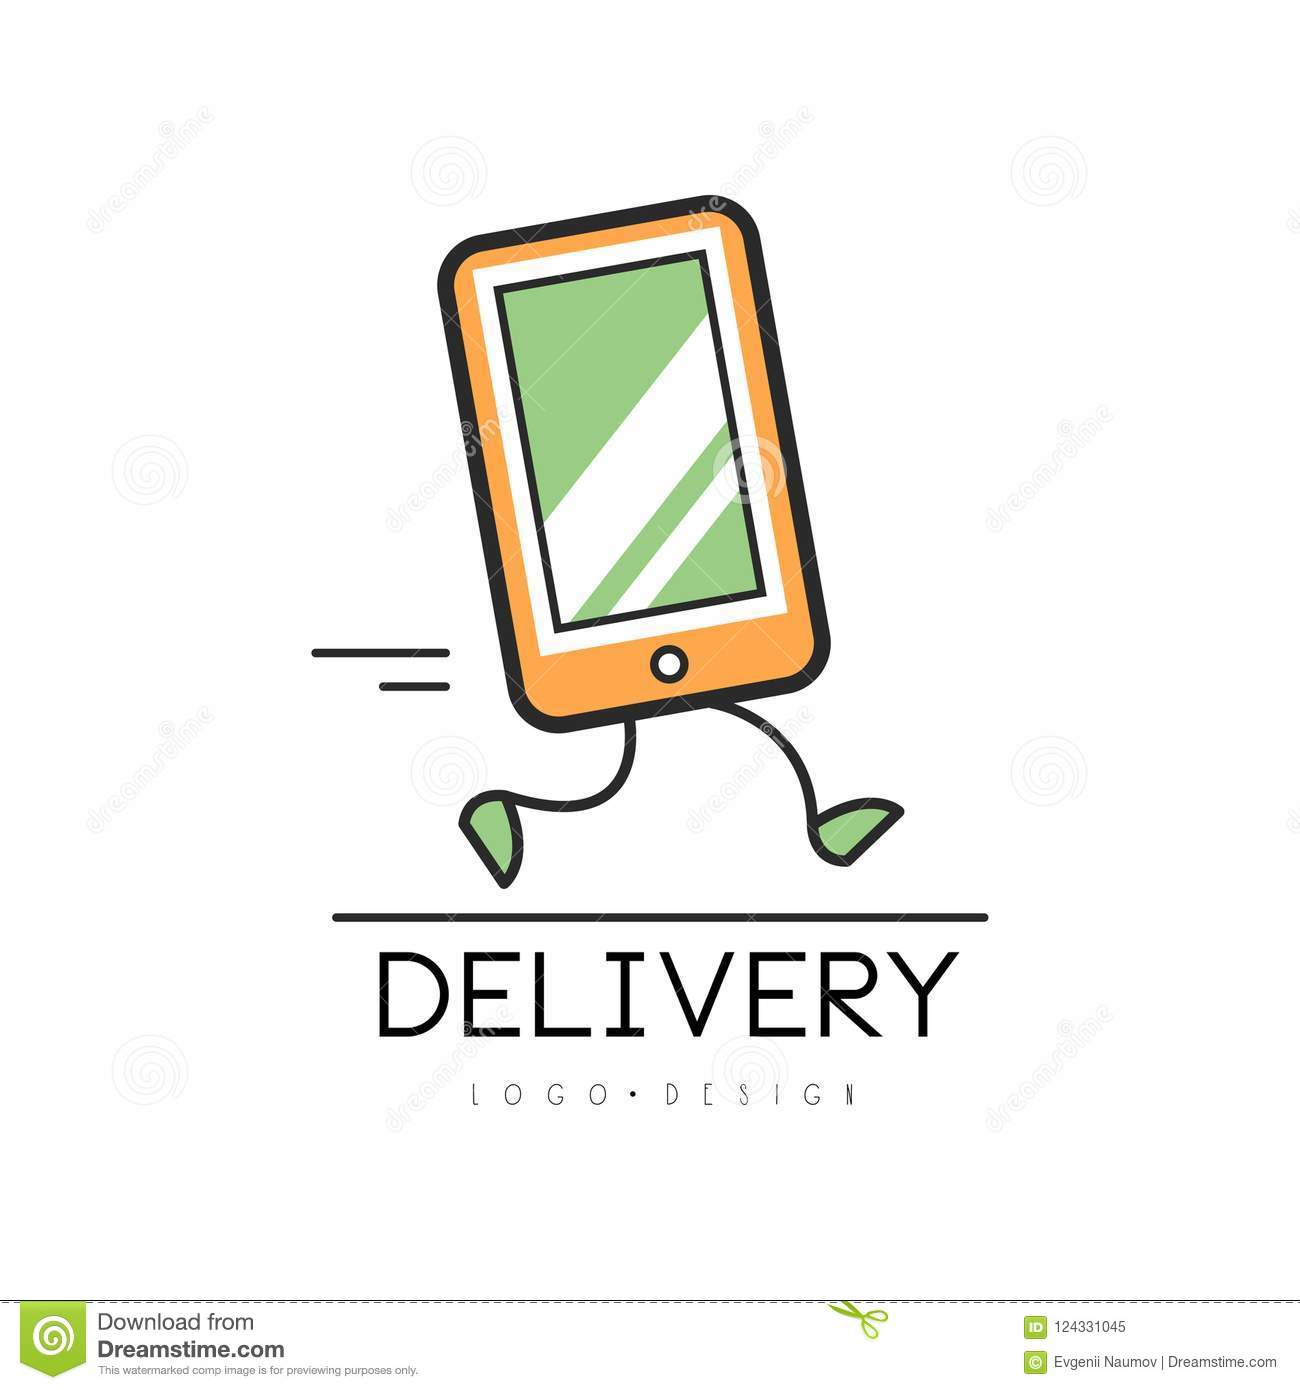 delivery logo design creative template with running tablet pc for